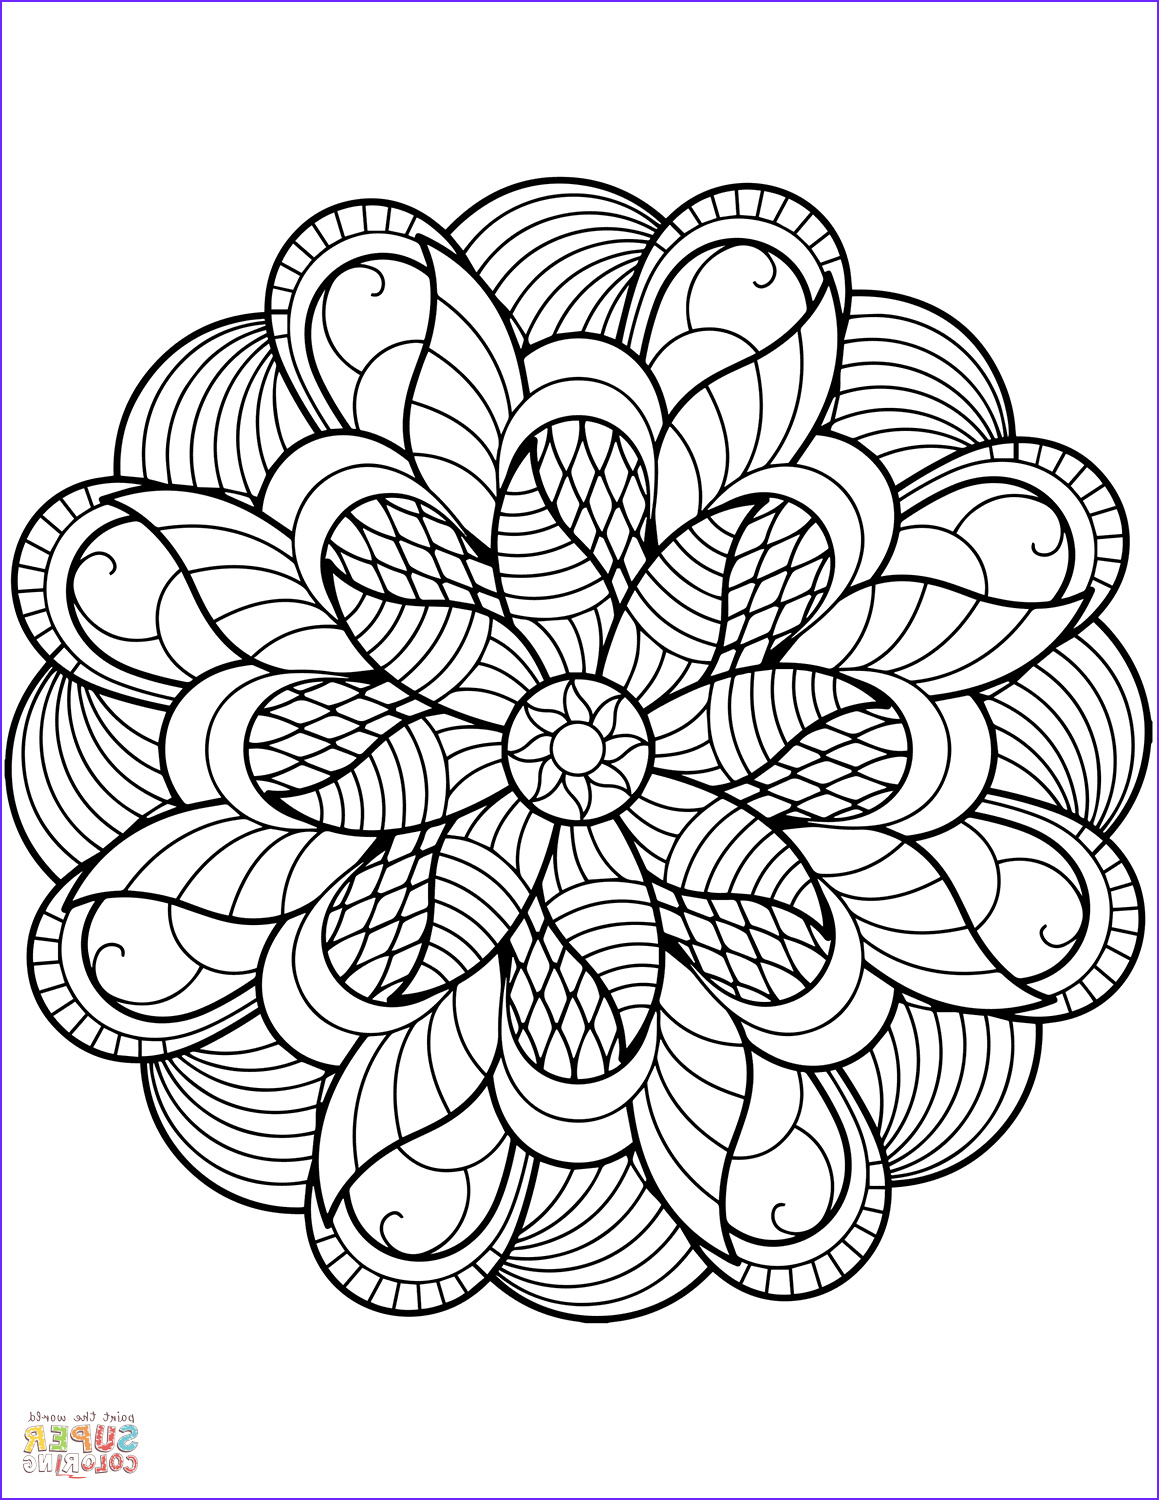 Free Printable Mandalas Coloring Pages Adults Best Of Collection Flower Mandala Coloring Page